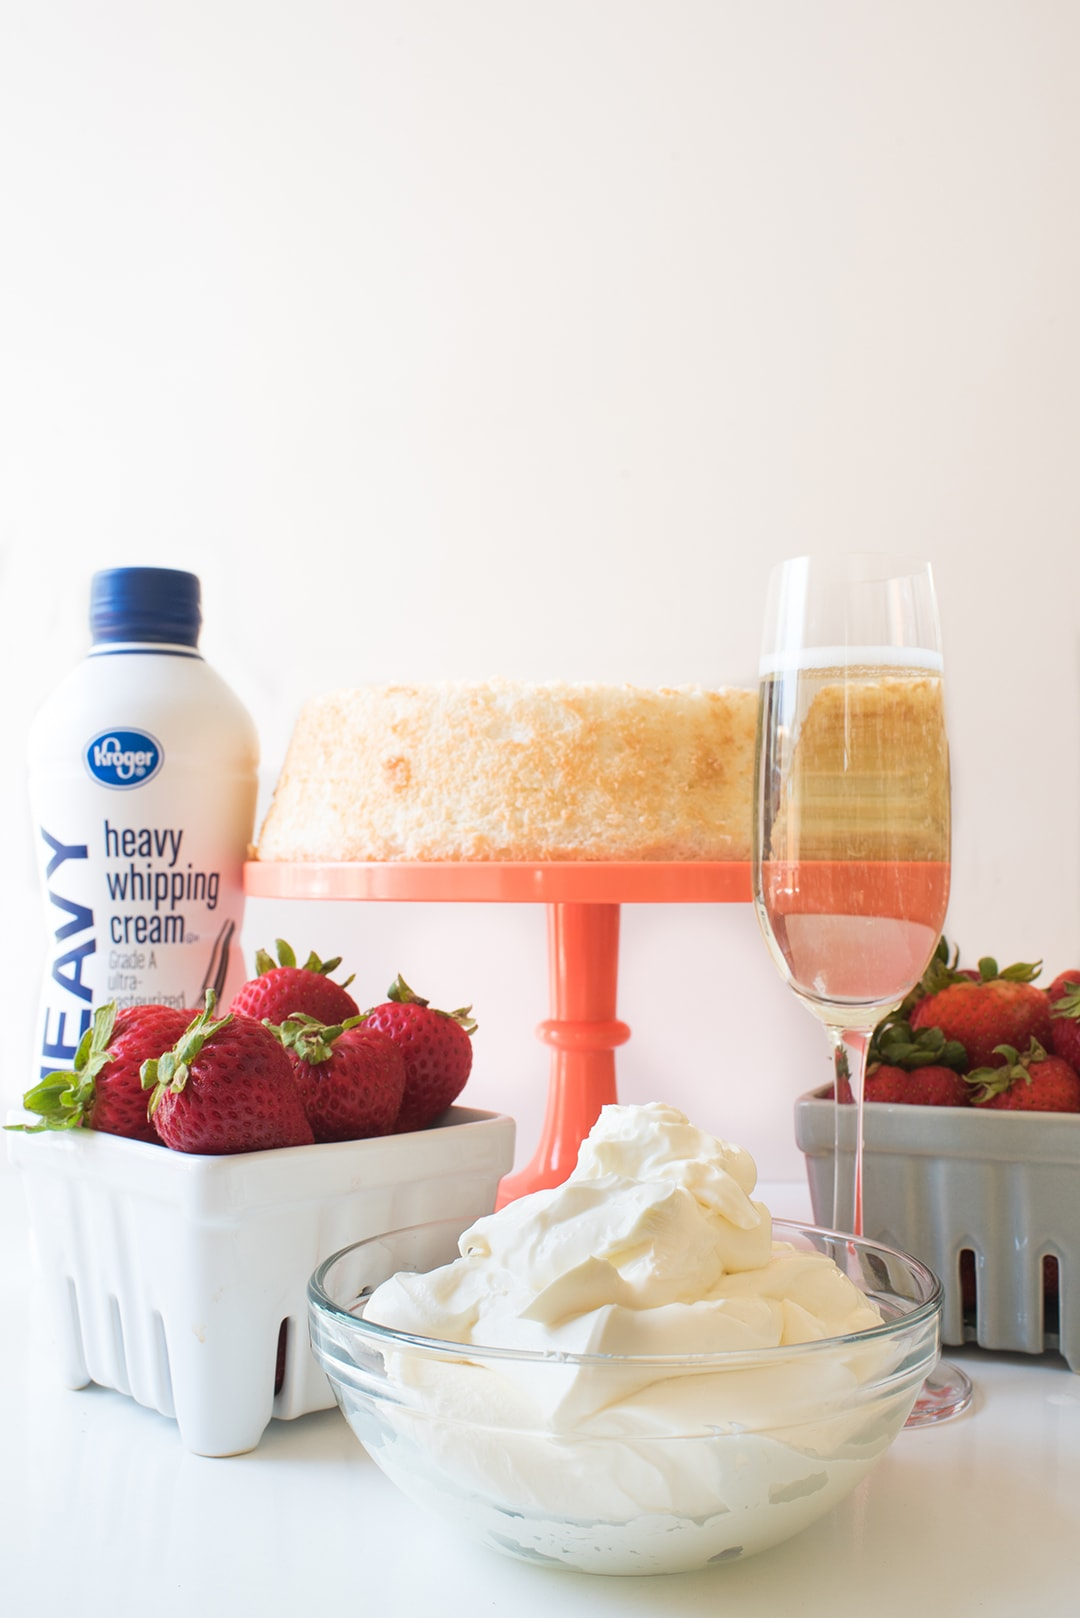 Strawberry Trifle - pound cake with champagne, strawberries,and heavy cream